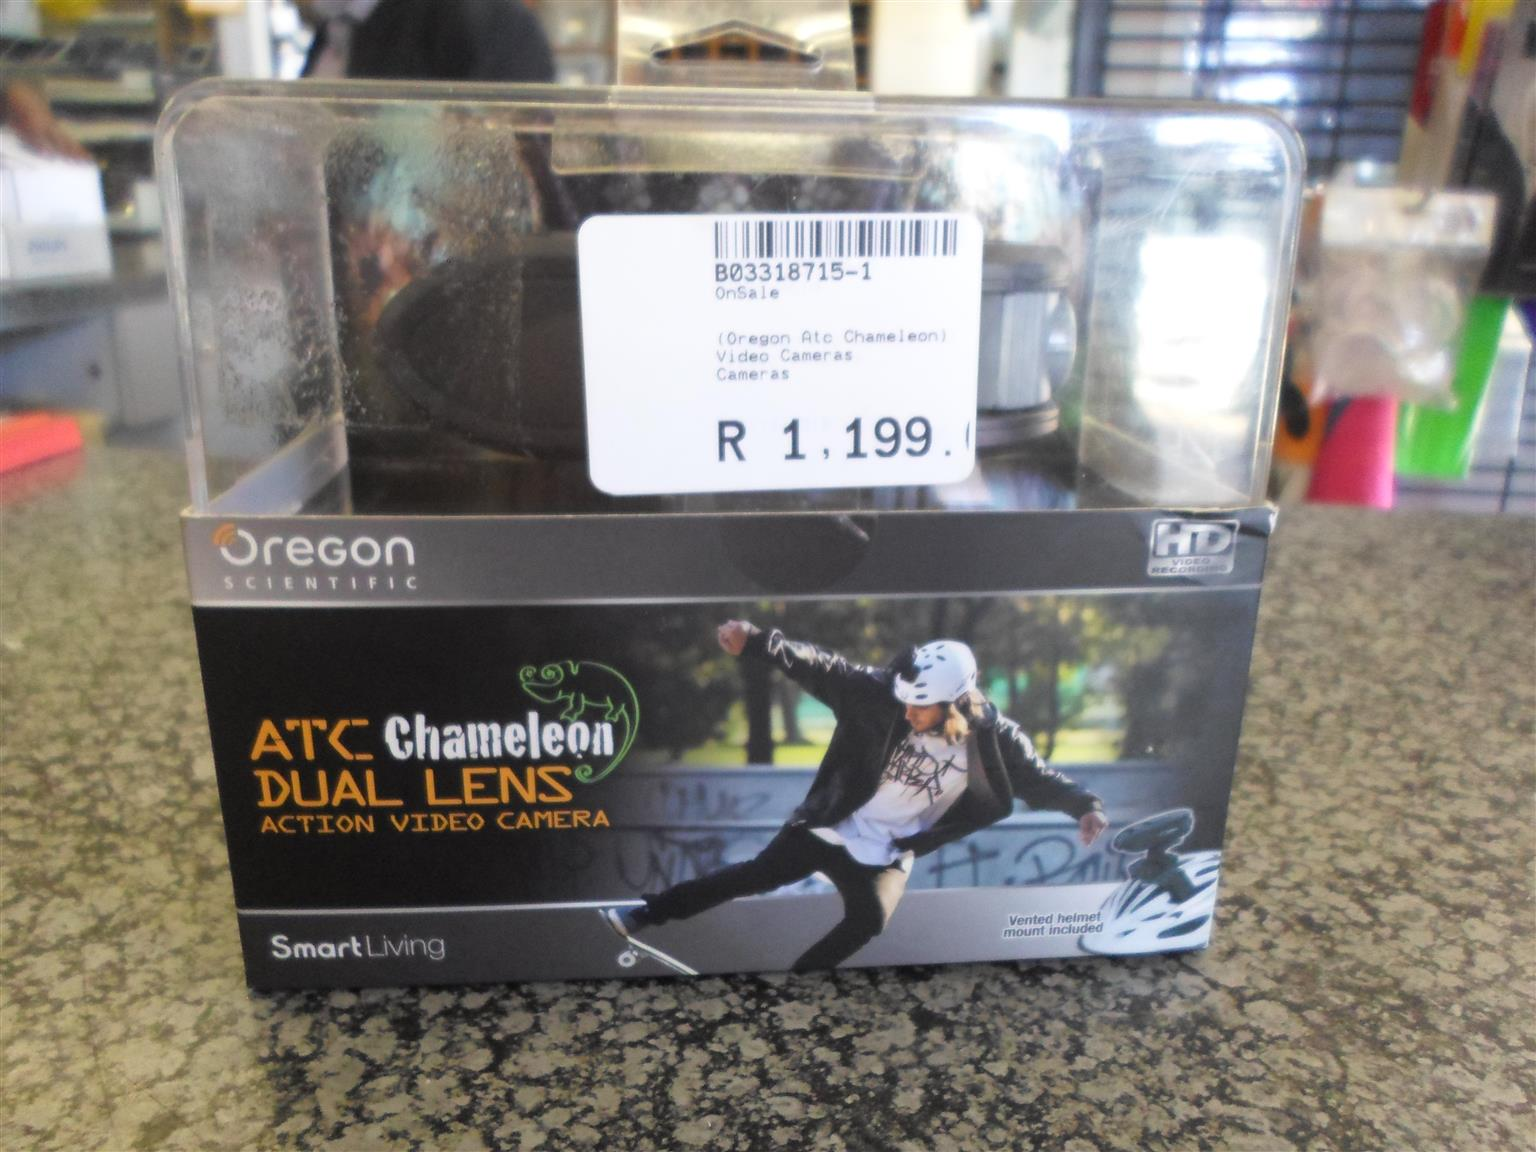 ATC Chameleon Dual Action Video Camera